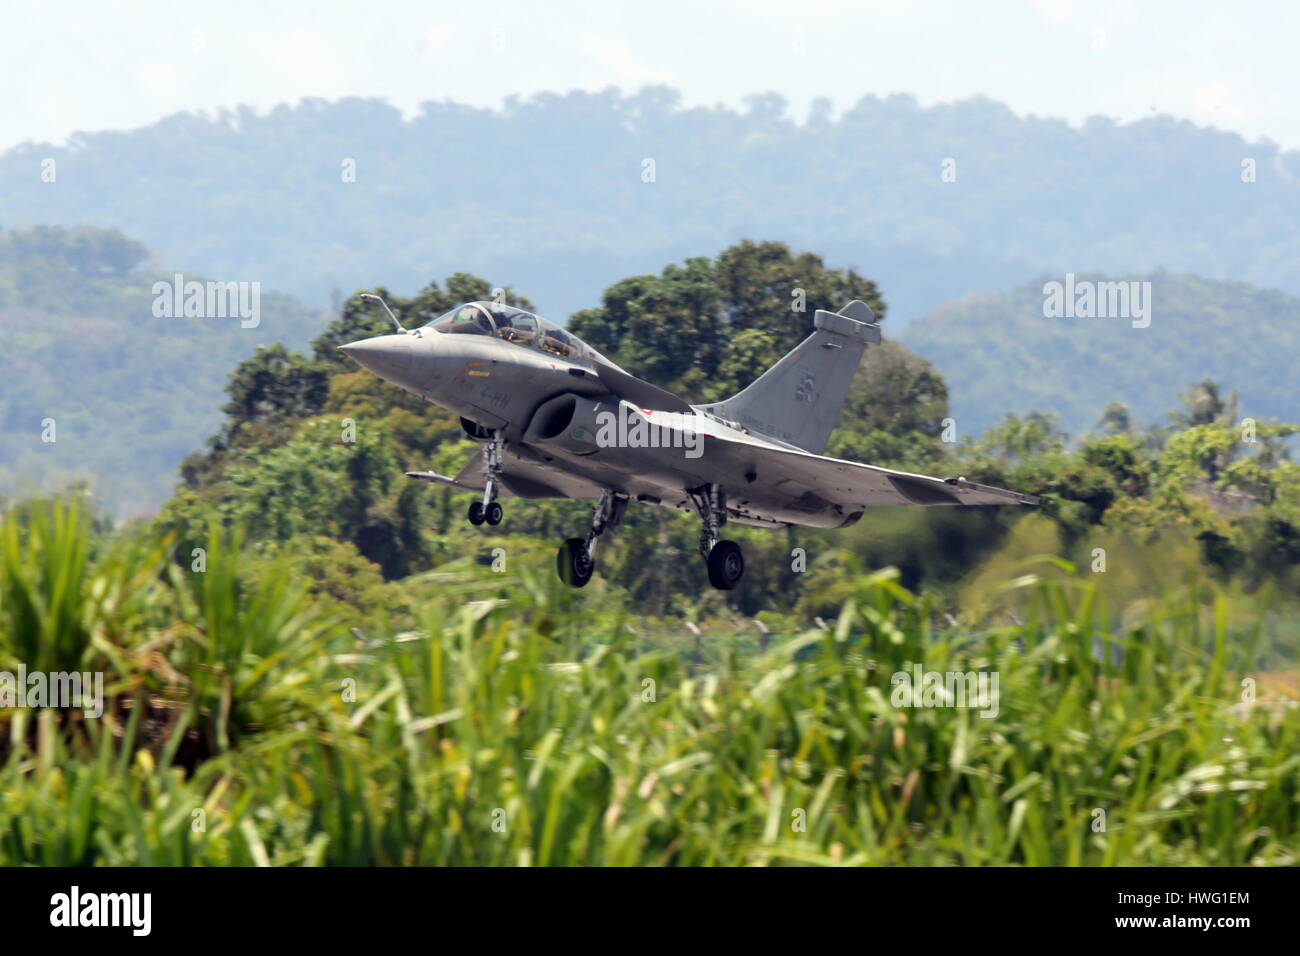 Langkawi, Malaysia. 21st Mar, 2017. The Dassault Rafale French twin-engine, canard delta wing, multirole fighter - Stock Image